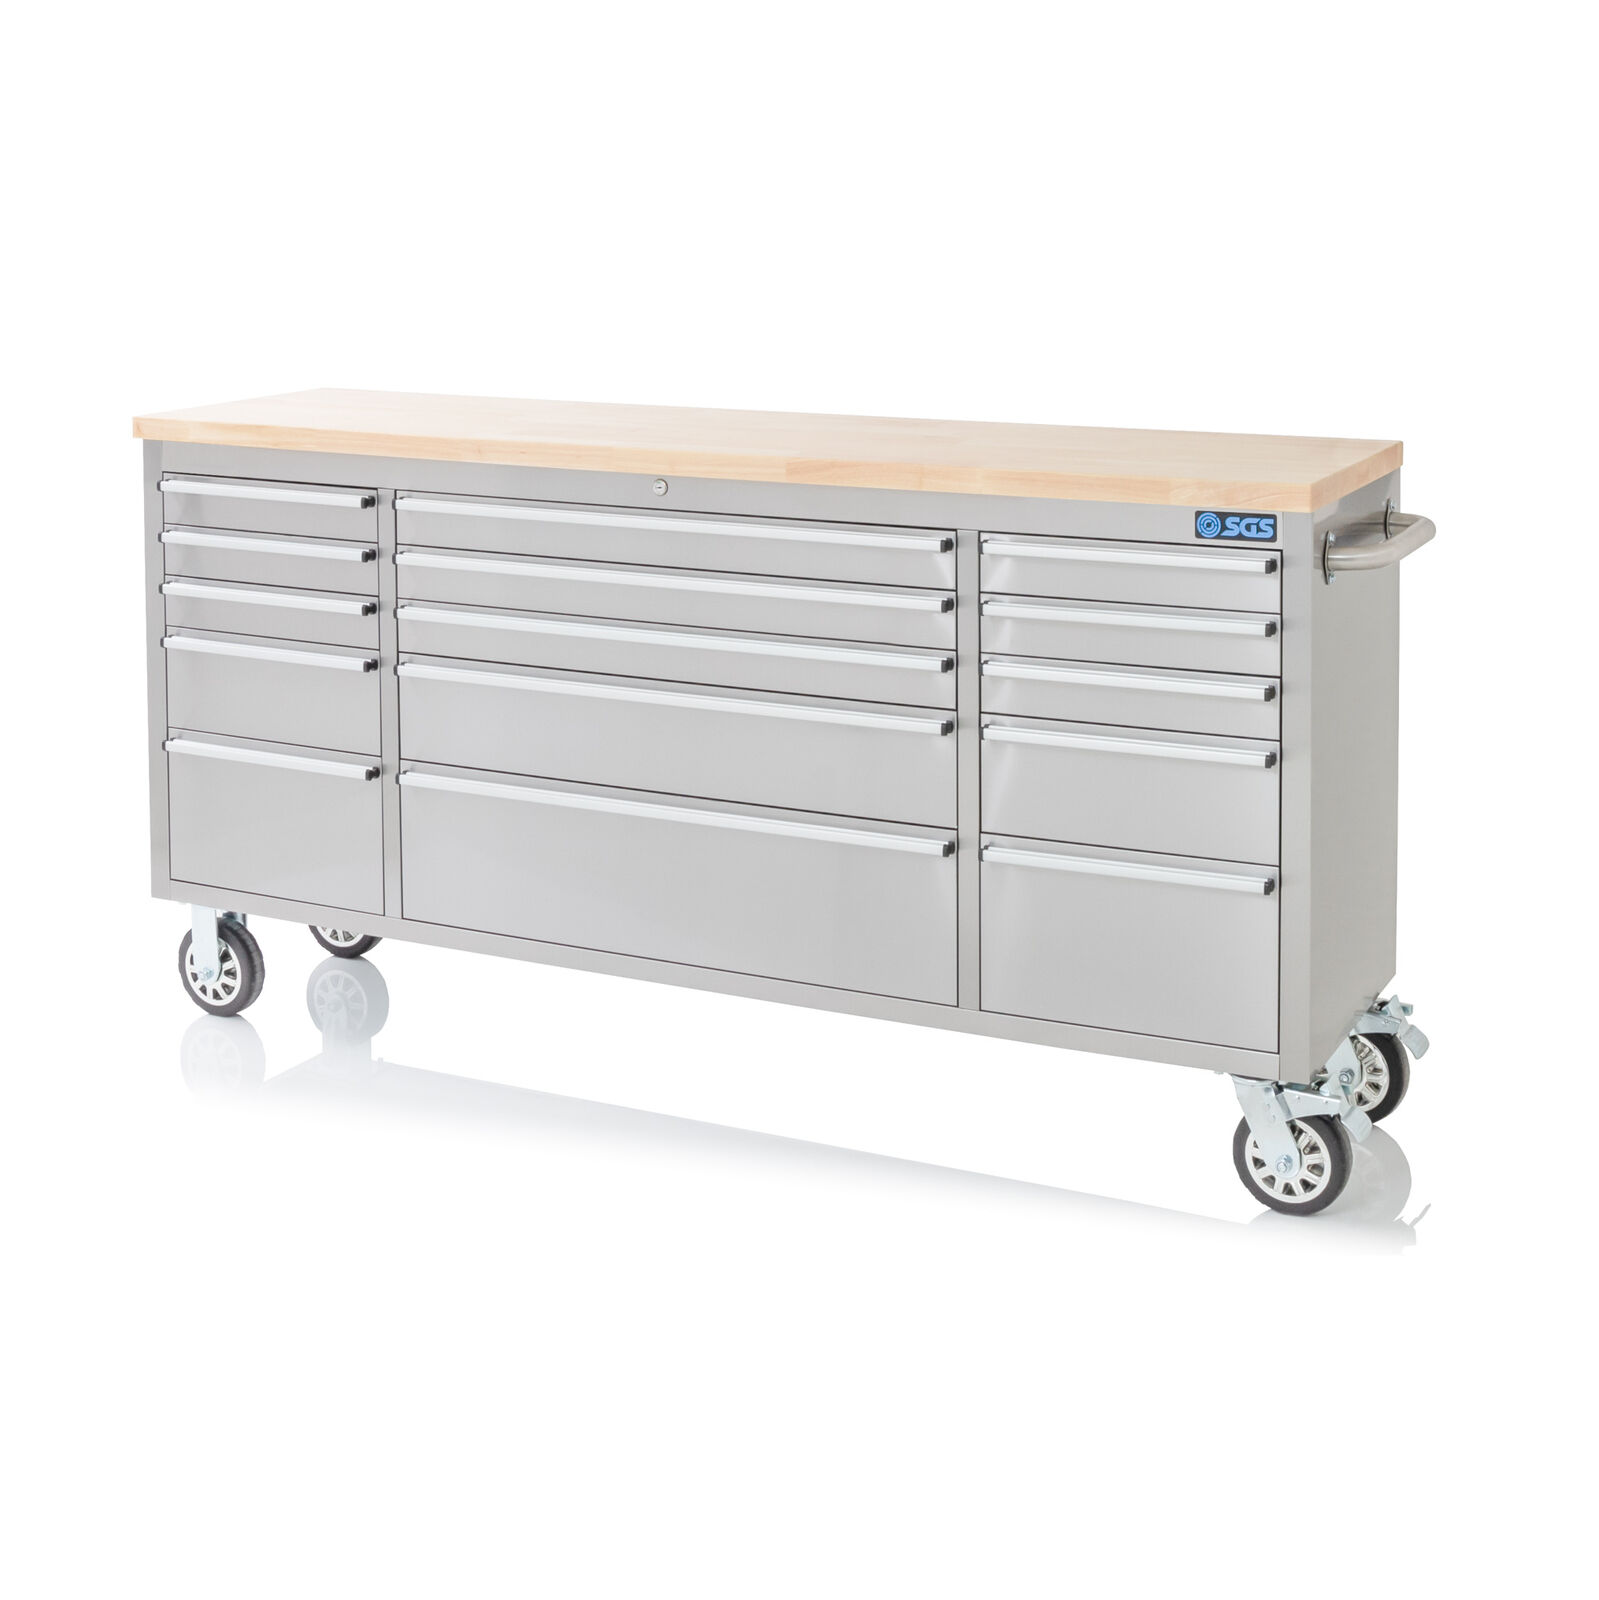 72 Stainless Steel 15 Drawer Work Bench Tool Box Chest Cabinet Picclick Uk